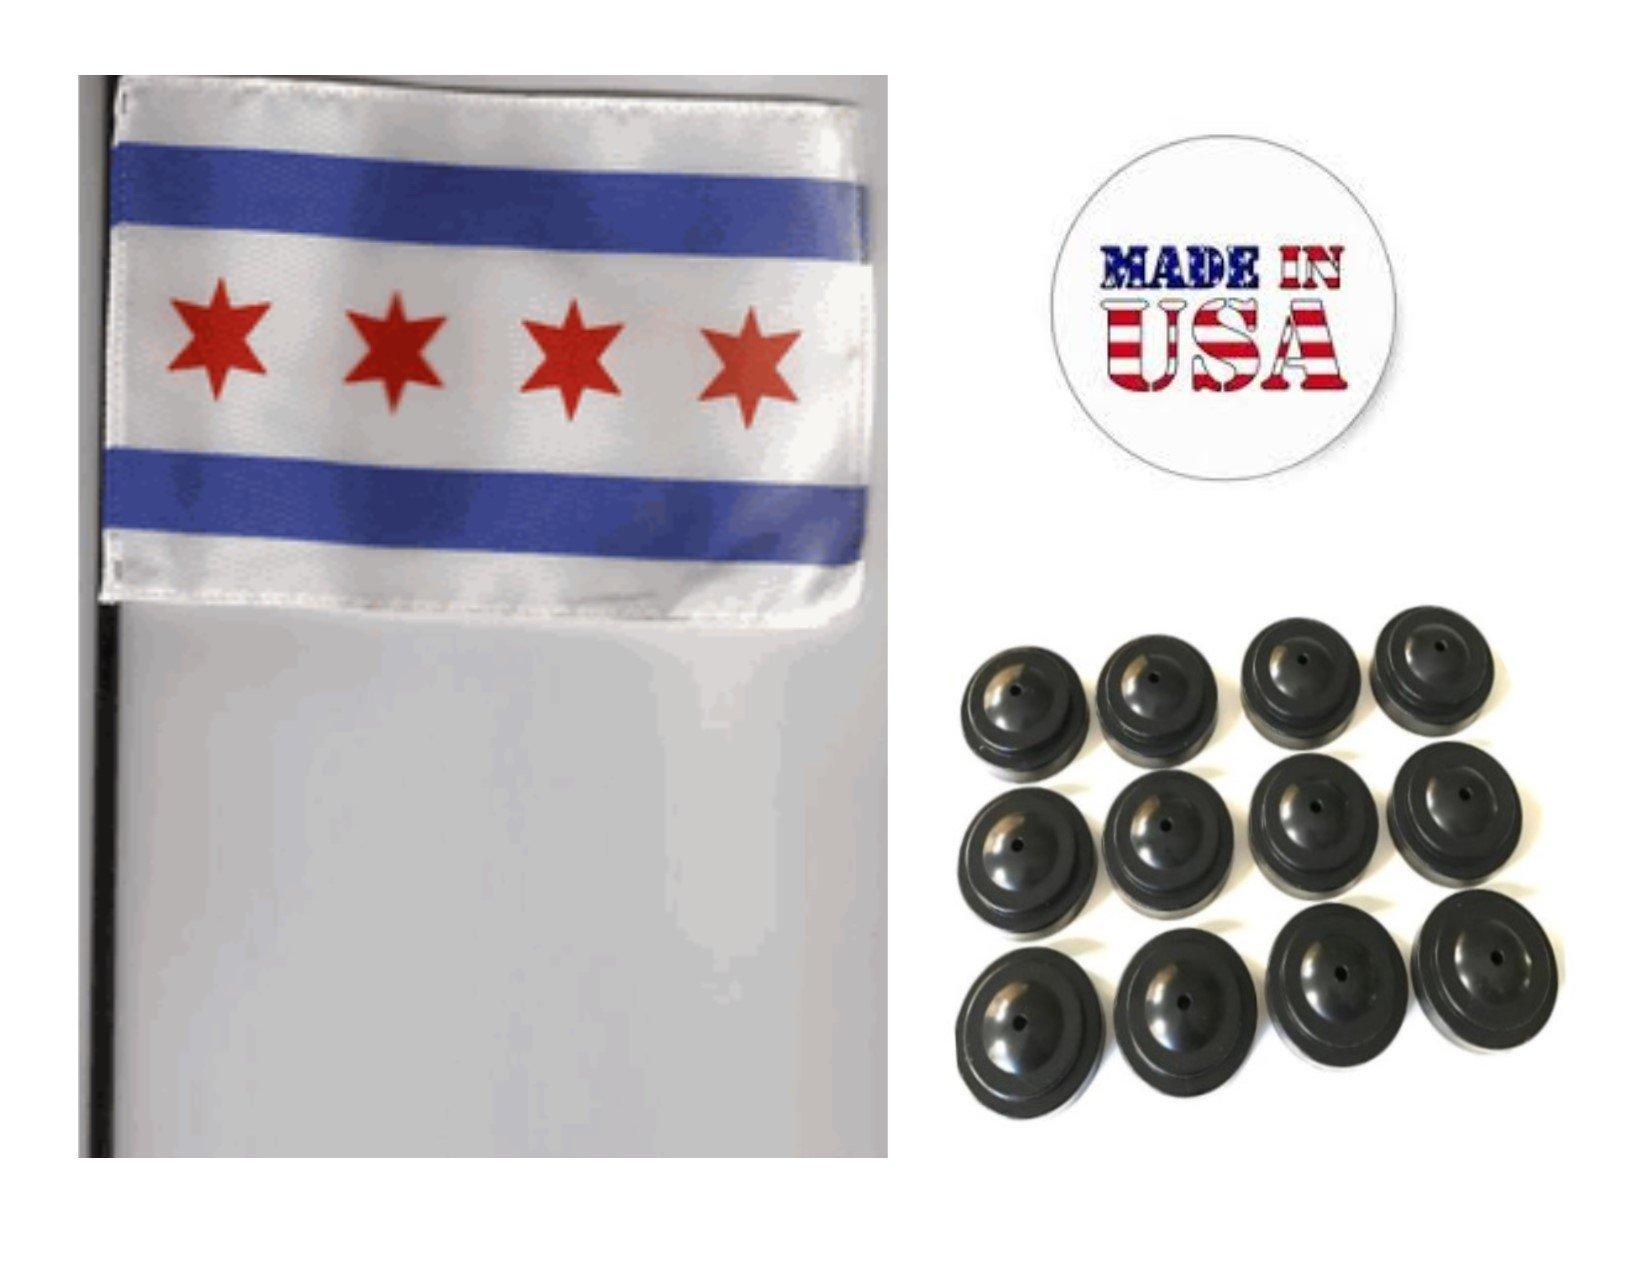 Made in the USA!! Box of 12 City of Chicago 4''x6'' Miniature Desk & Table Flags Includes 12 Flag Stands & 12 Municipal Flag of Chicago Small Mini Stick Flags